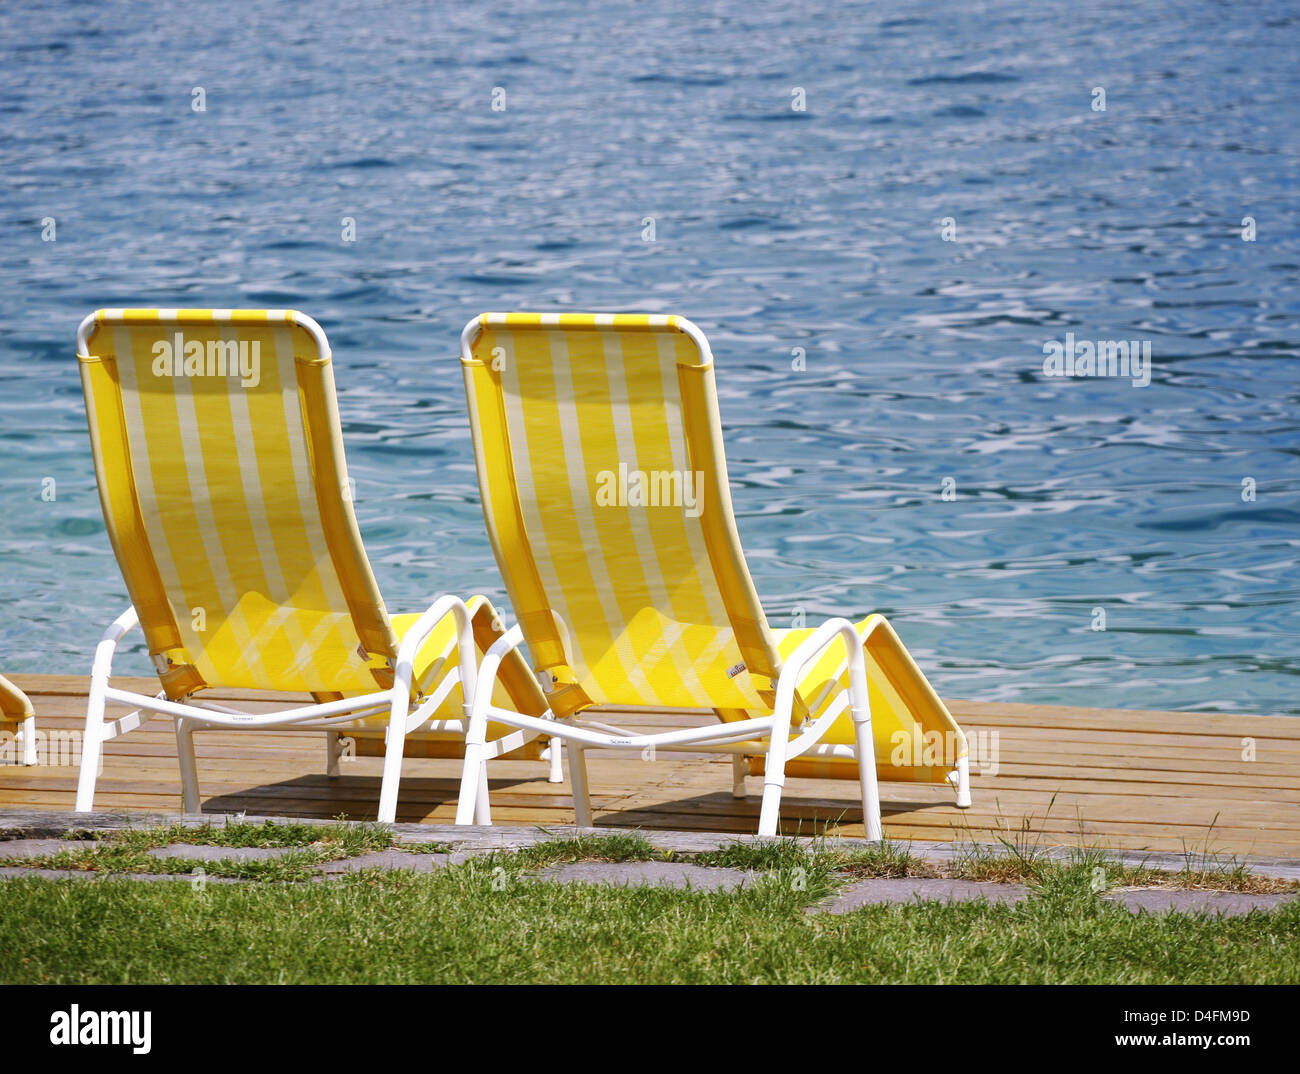 The picture shows two white-and-yellow deck chairs by the waterside ...